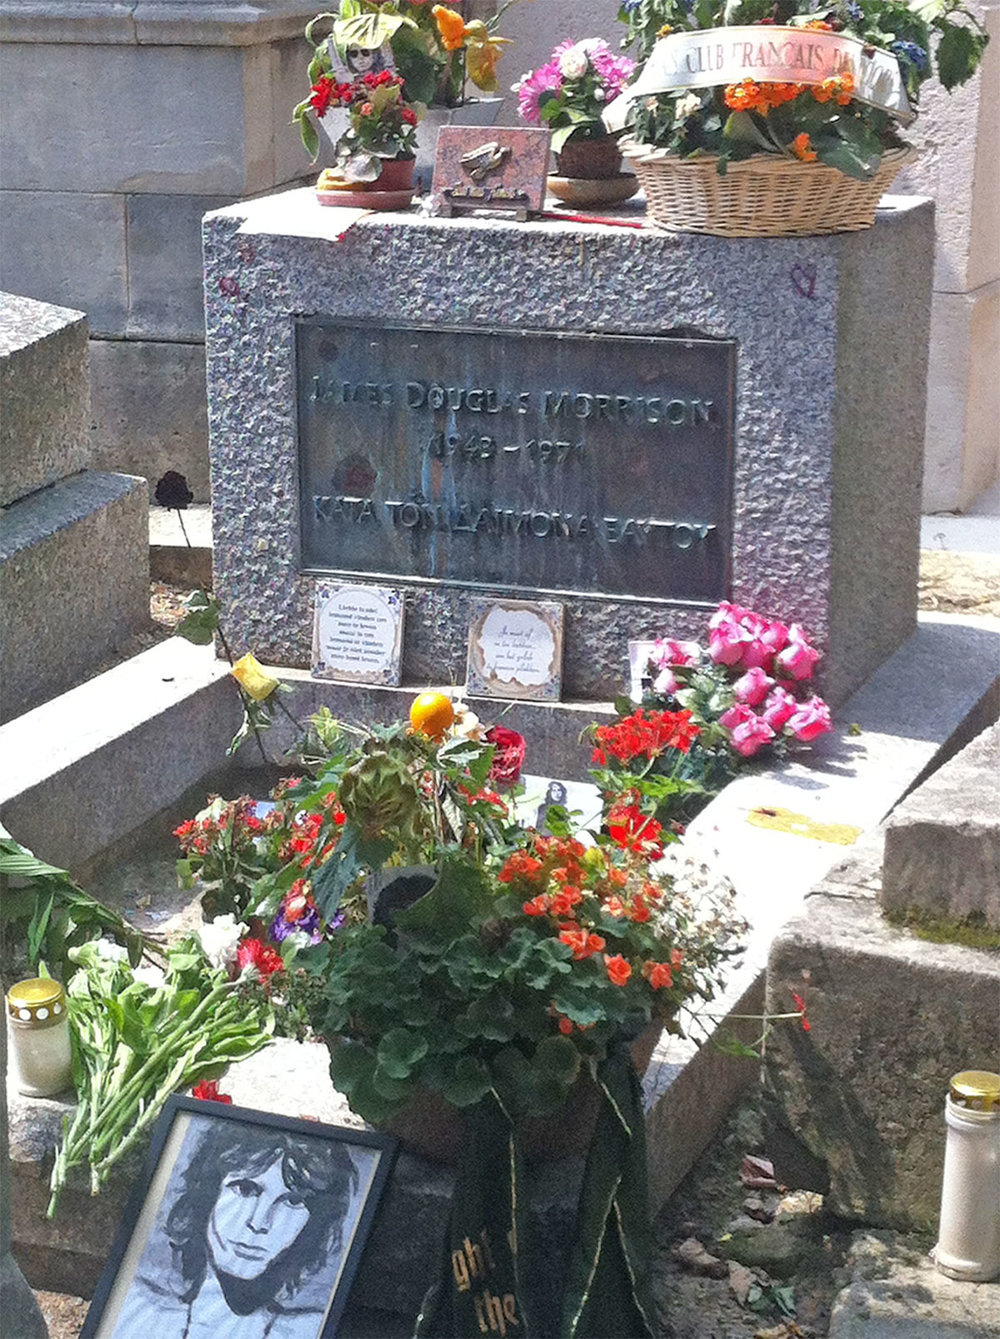 paris pere lachaise cemetery jim morrison tombstone | Paris Neighborhoods Explained